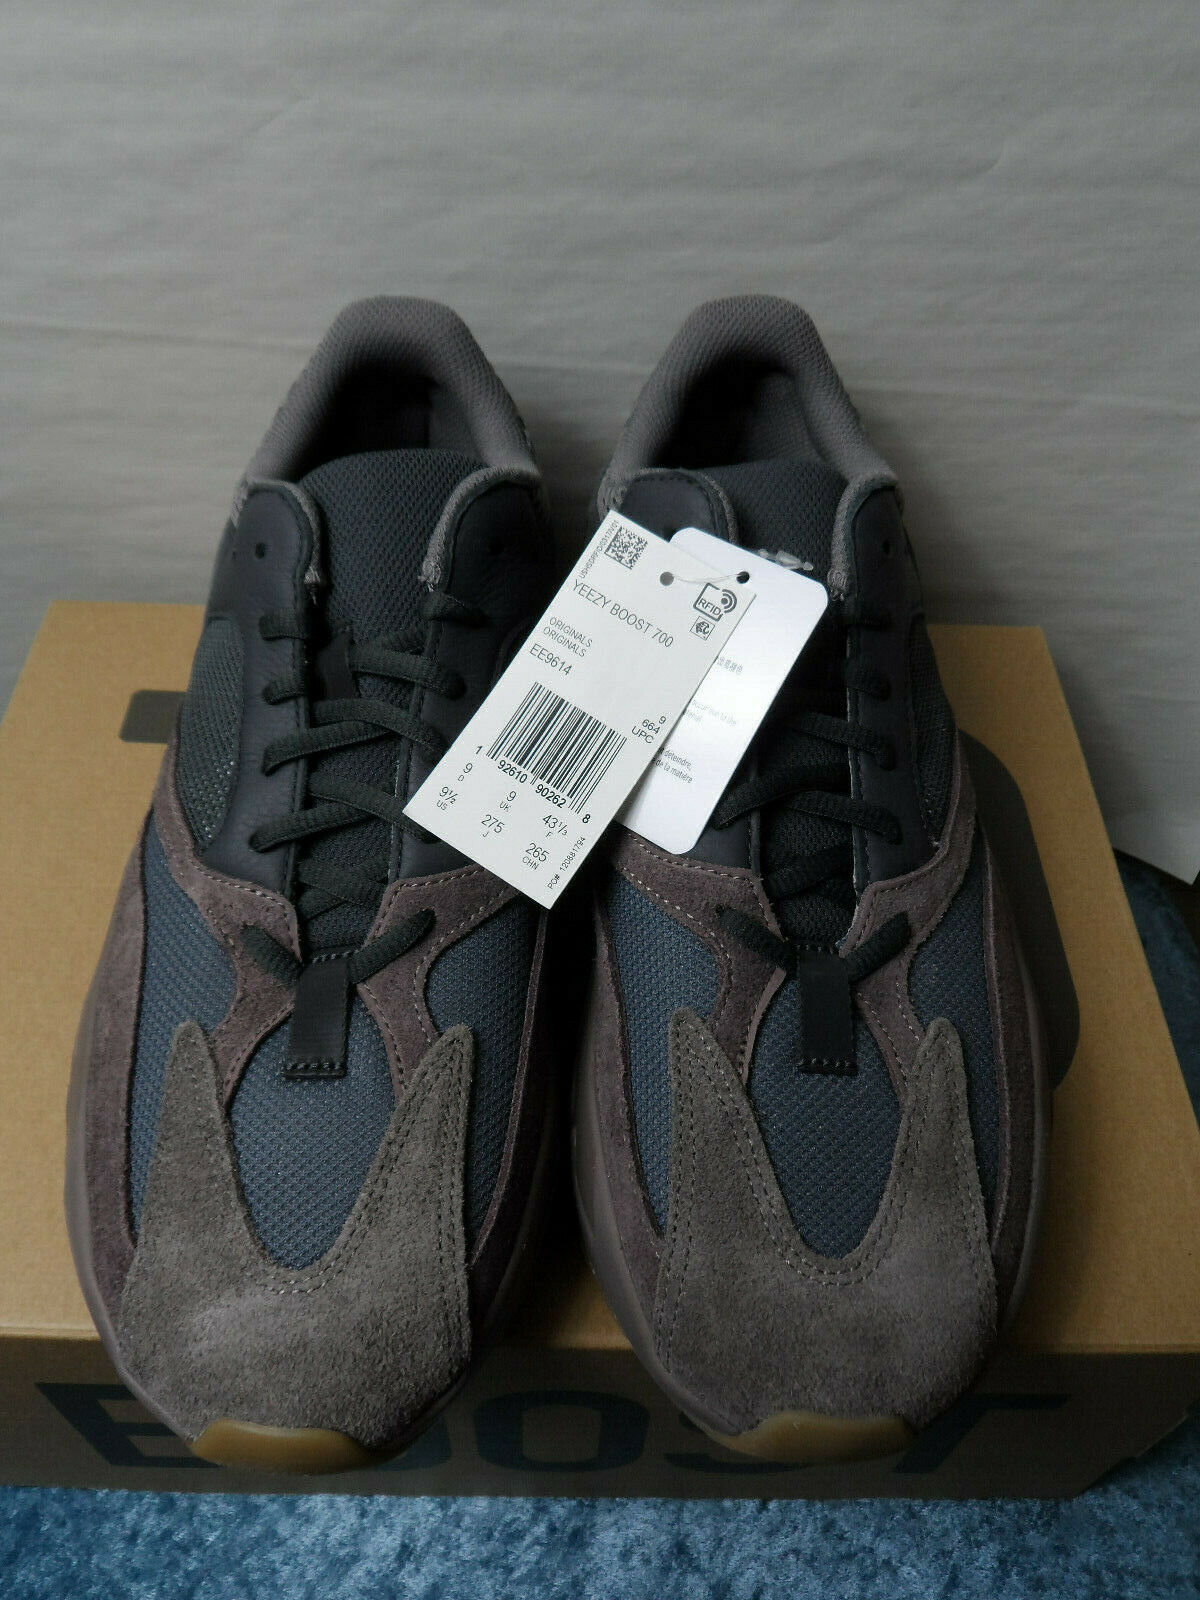 Adidas Yeezy Boost 700 - Mauve - Size 9.5 - 100% Authentic - New